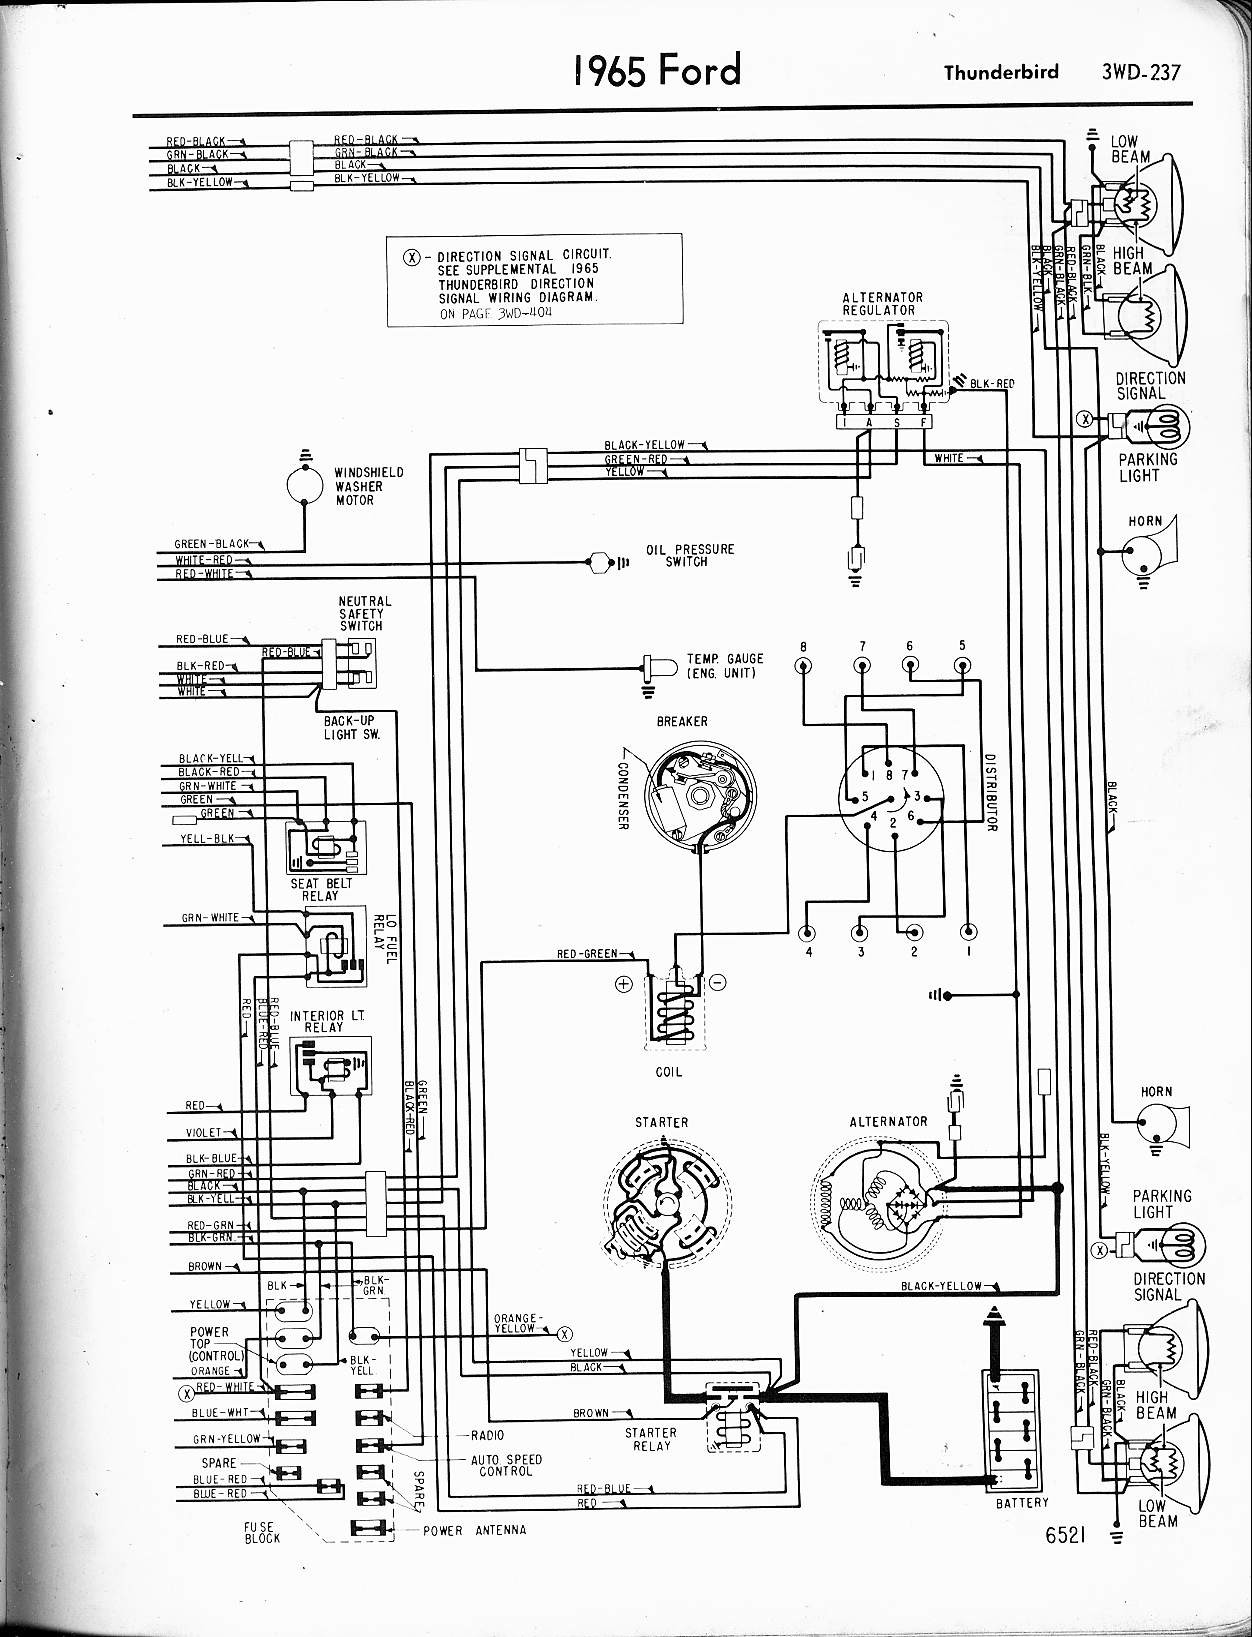 1954 Ford Turn Signal Wiring Diagram Electrical Diagrams Chevy Blinker Van Wire Trusted